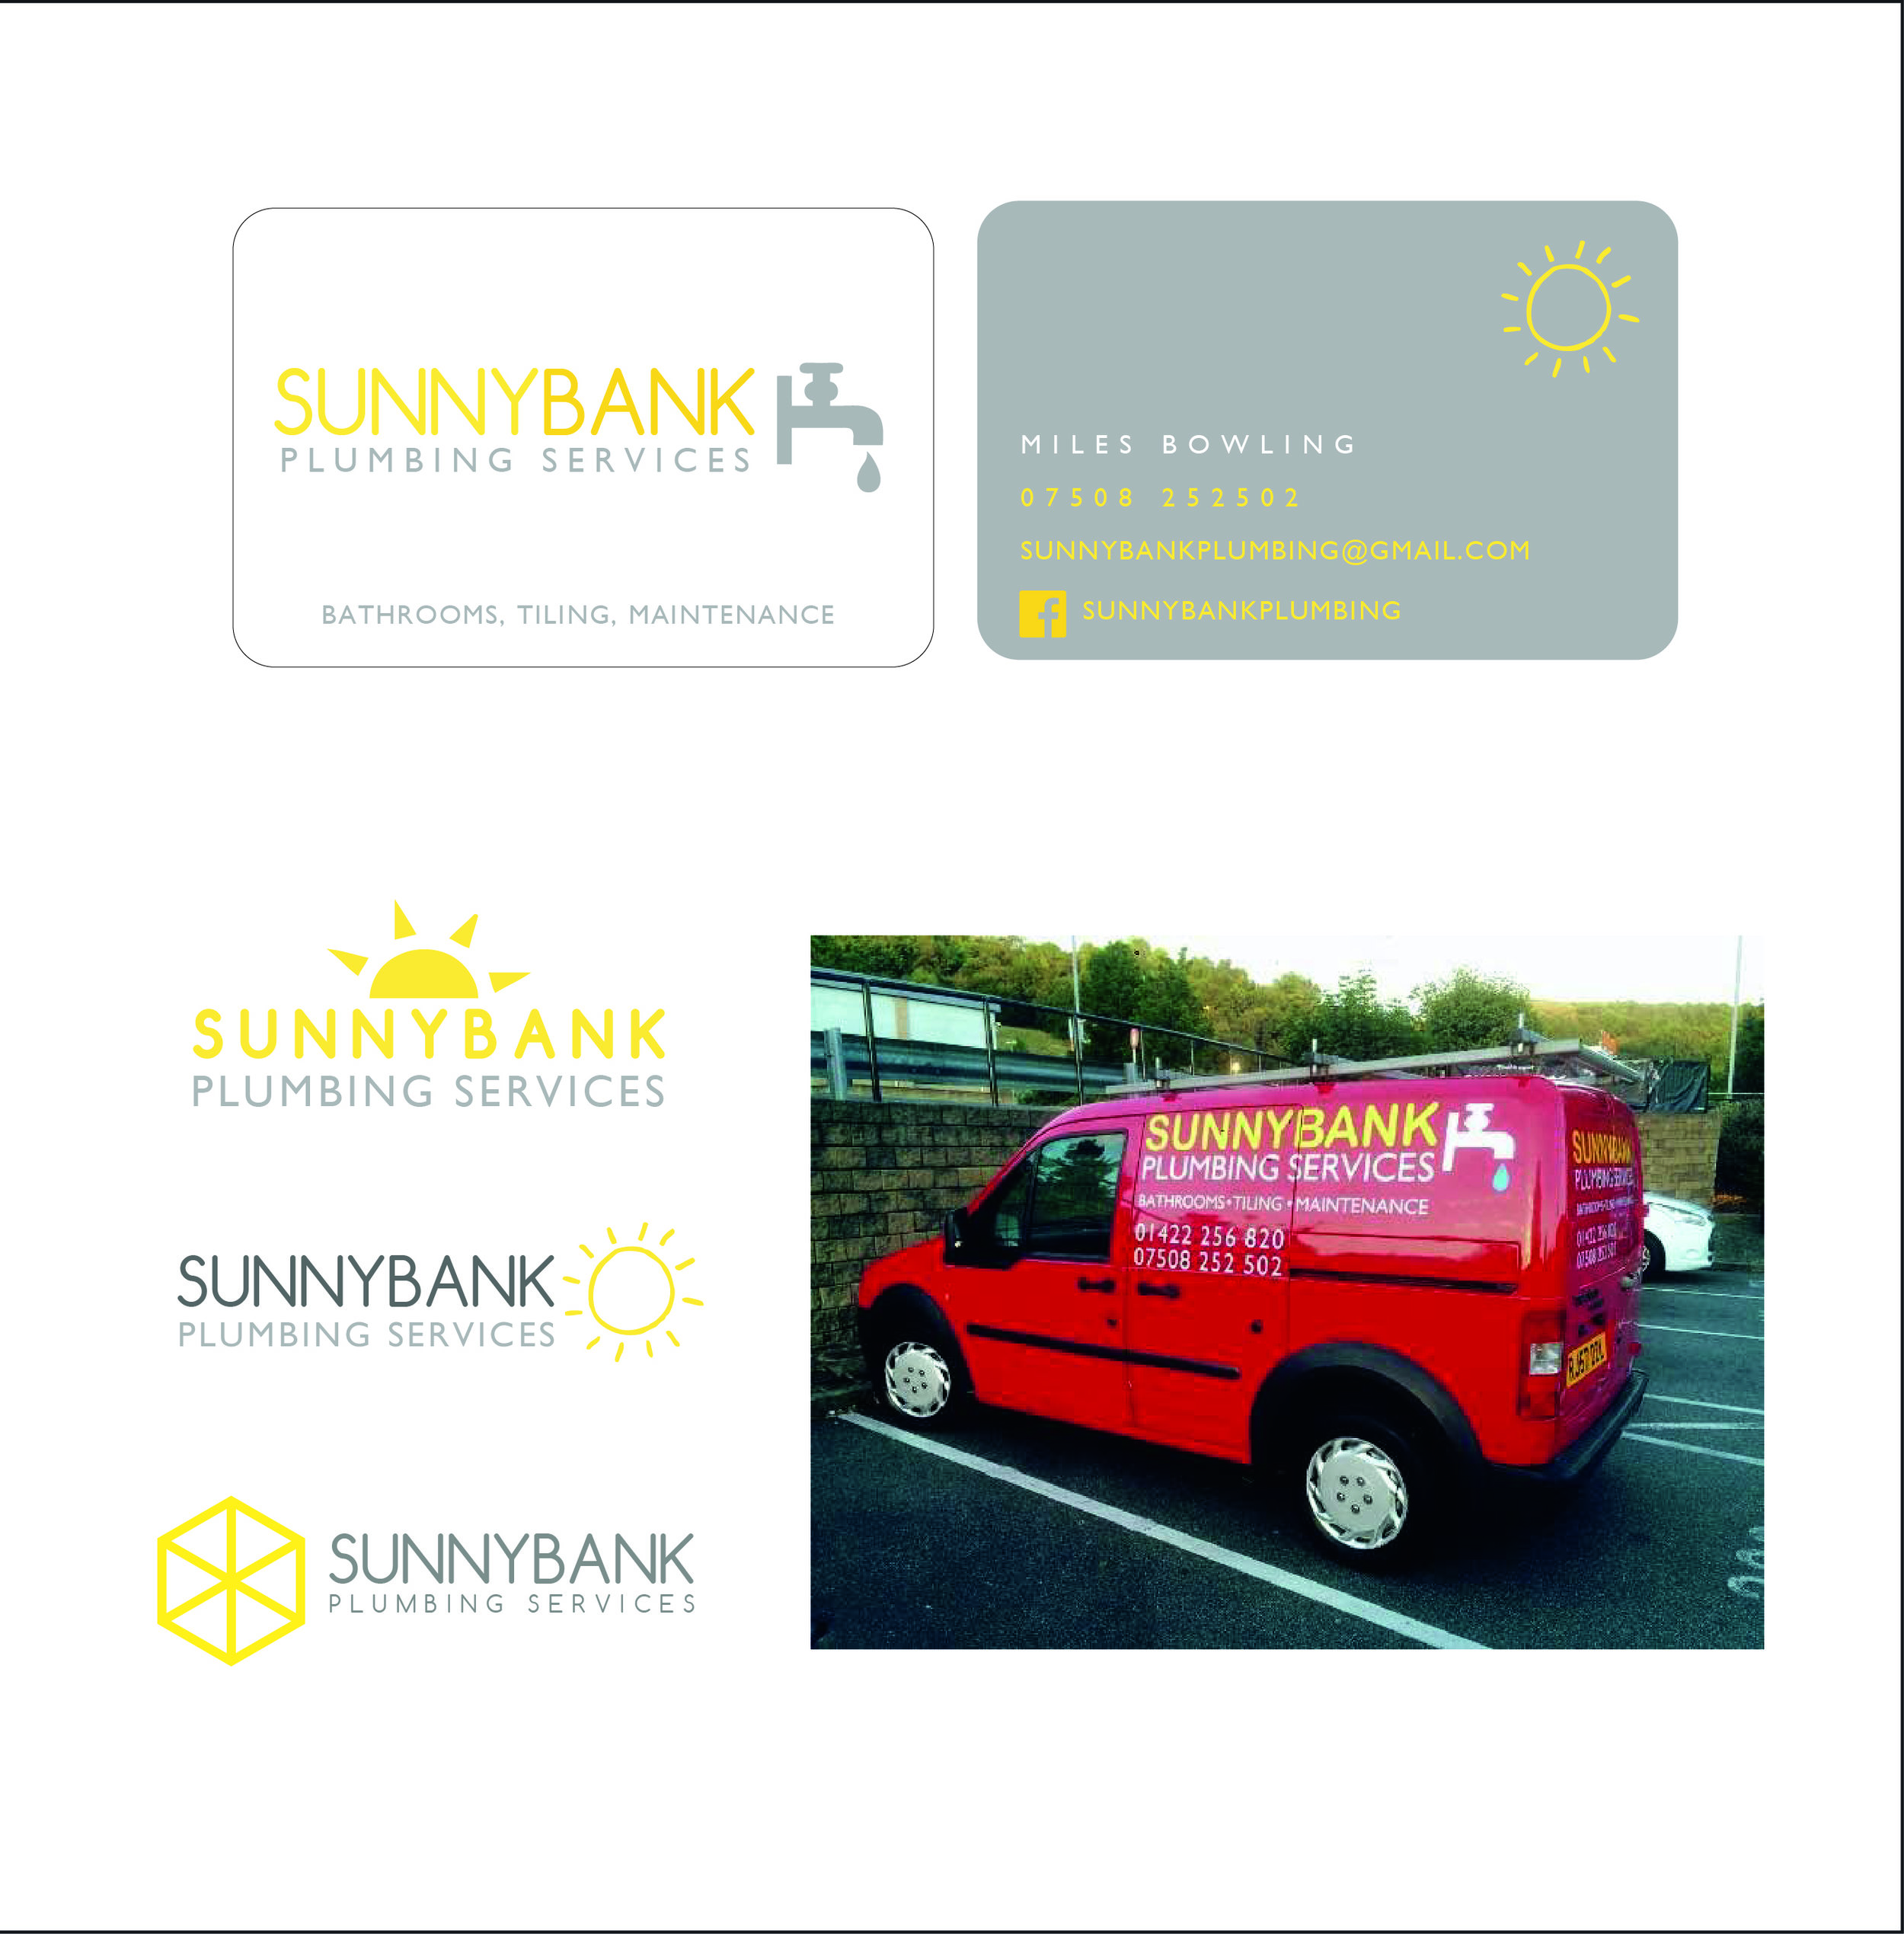 """SUNNYBANK   Tradesman Miles came to me wanting a logo and business identity developing for his newly developed business.. He had the name in mind, but no other real brief. I provided market research, developed colour palettes and designed a series of logos for him to choose from.   """"These are perfect, thank you so much, great work! I would definitely reccomend you to others. """"  Miles Bowling - Owner- SunnyBank"""